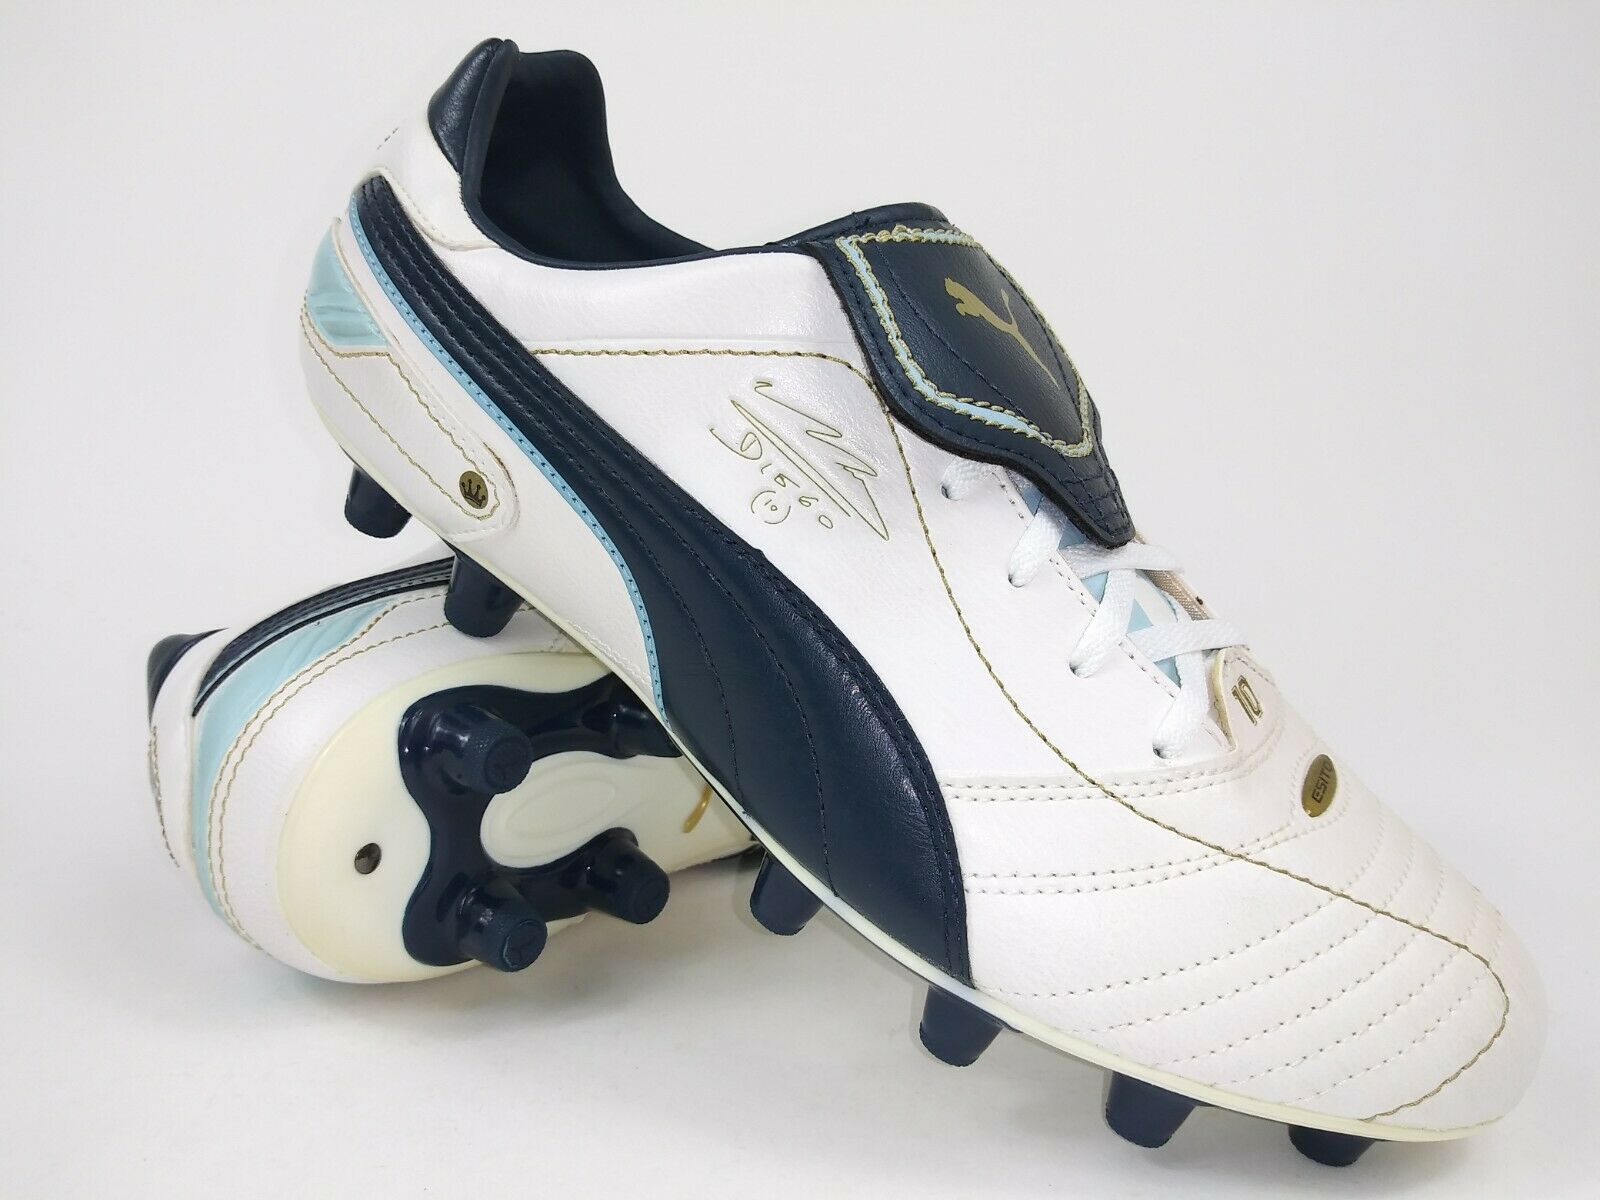 Rare 2010 Puma King Diego Maradona Finale Trainer 102169 01 Soccer Shoe Size 11 For Sale Online Ebay